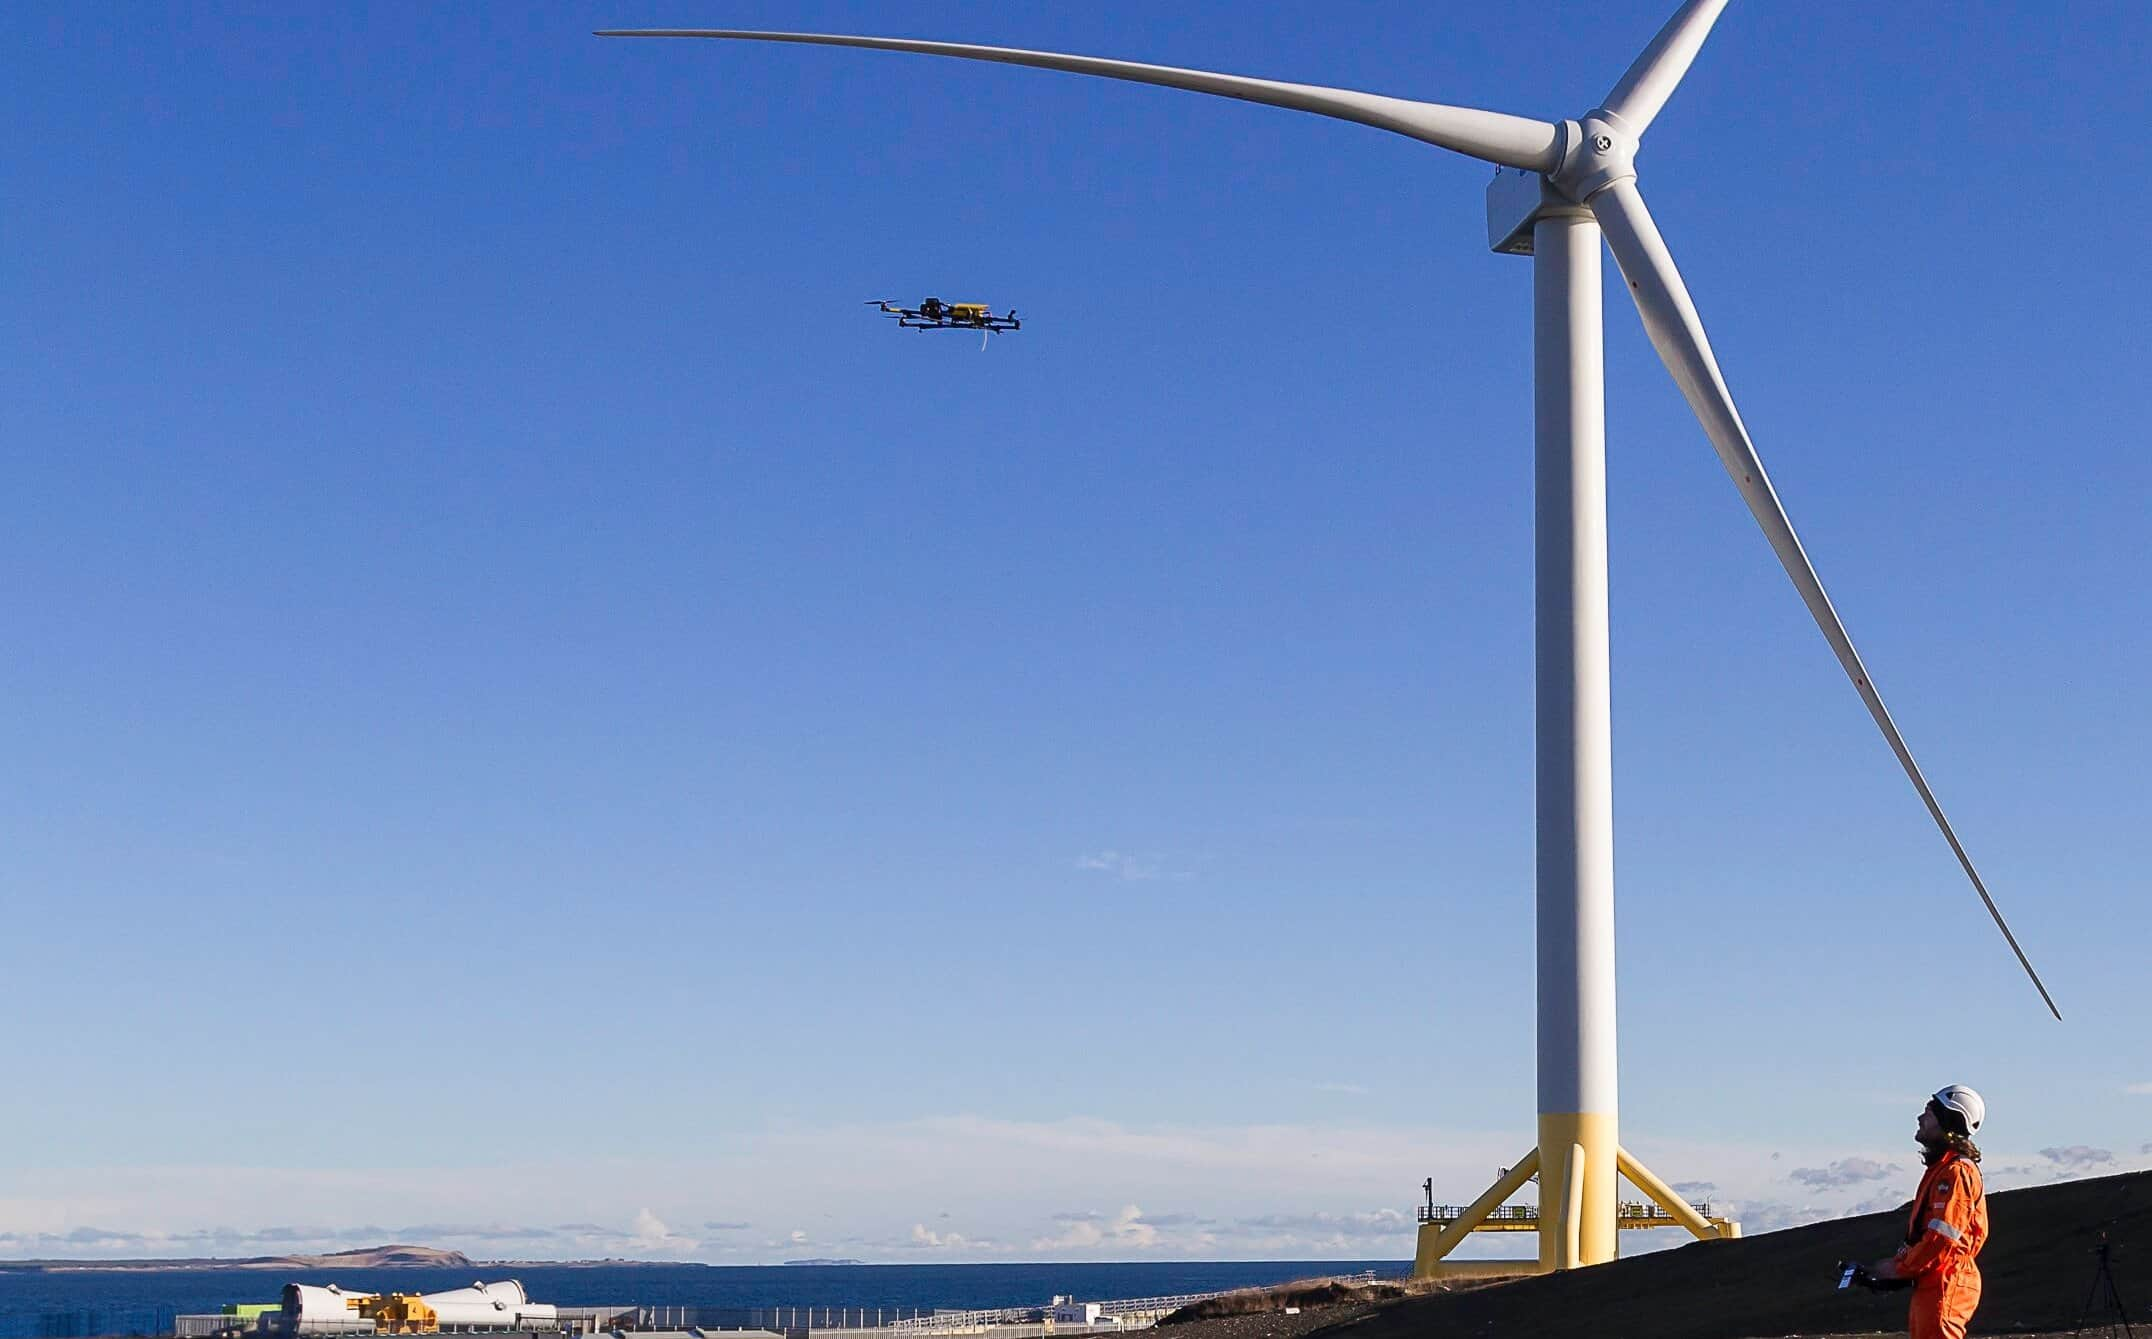 SgurrEnergy-UAV-with-wind-turbine-generator-e1488902831179 Renewables Consultancy Adopts Drones for Inspections